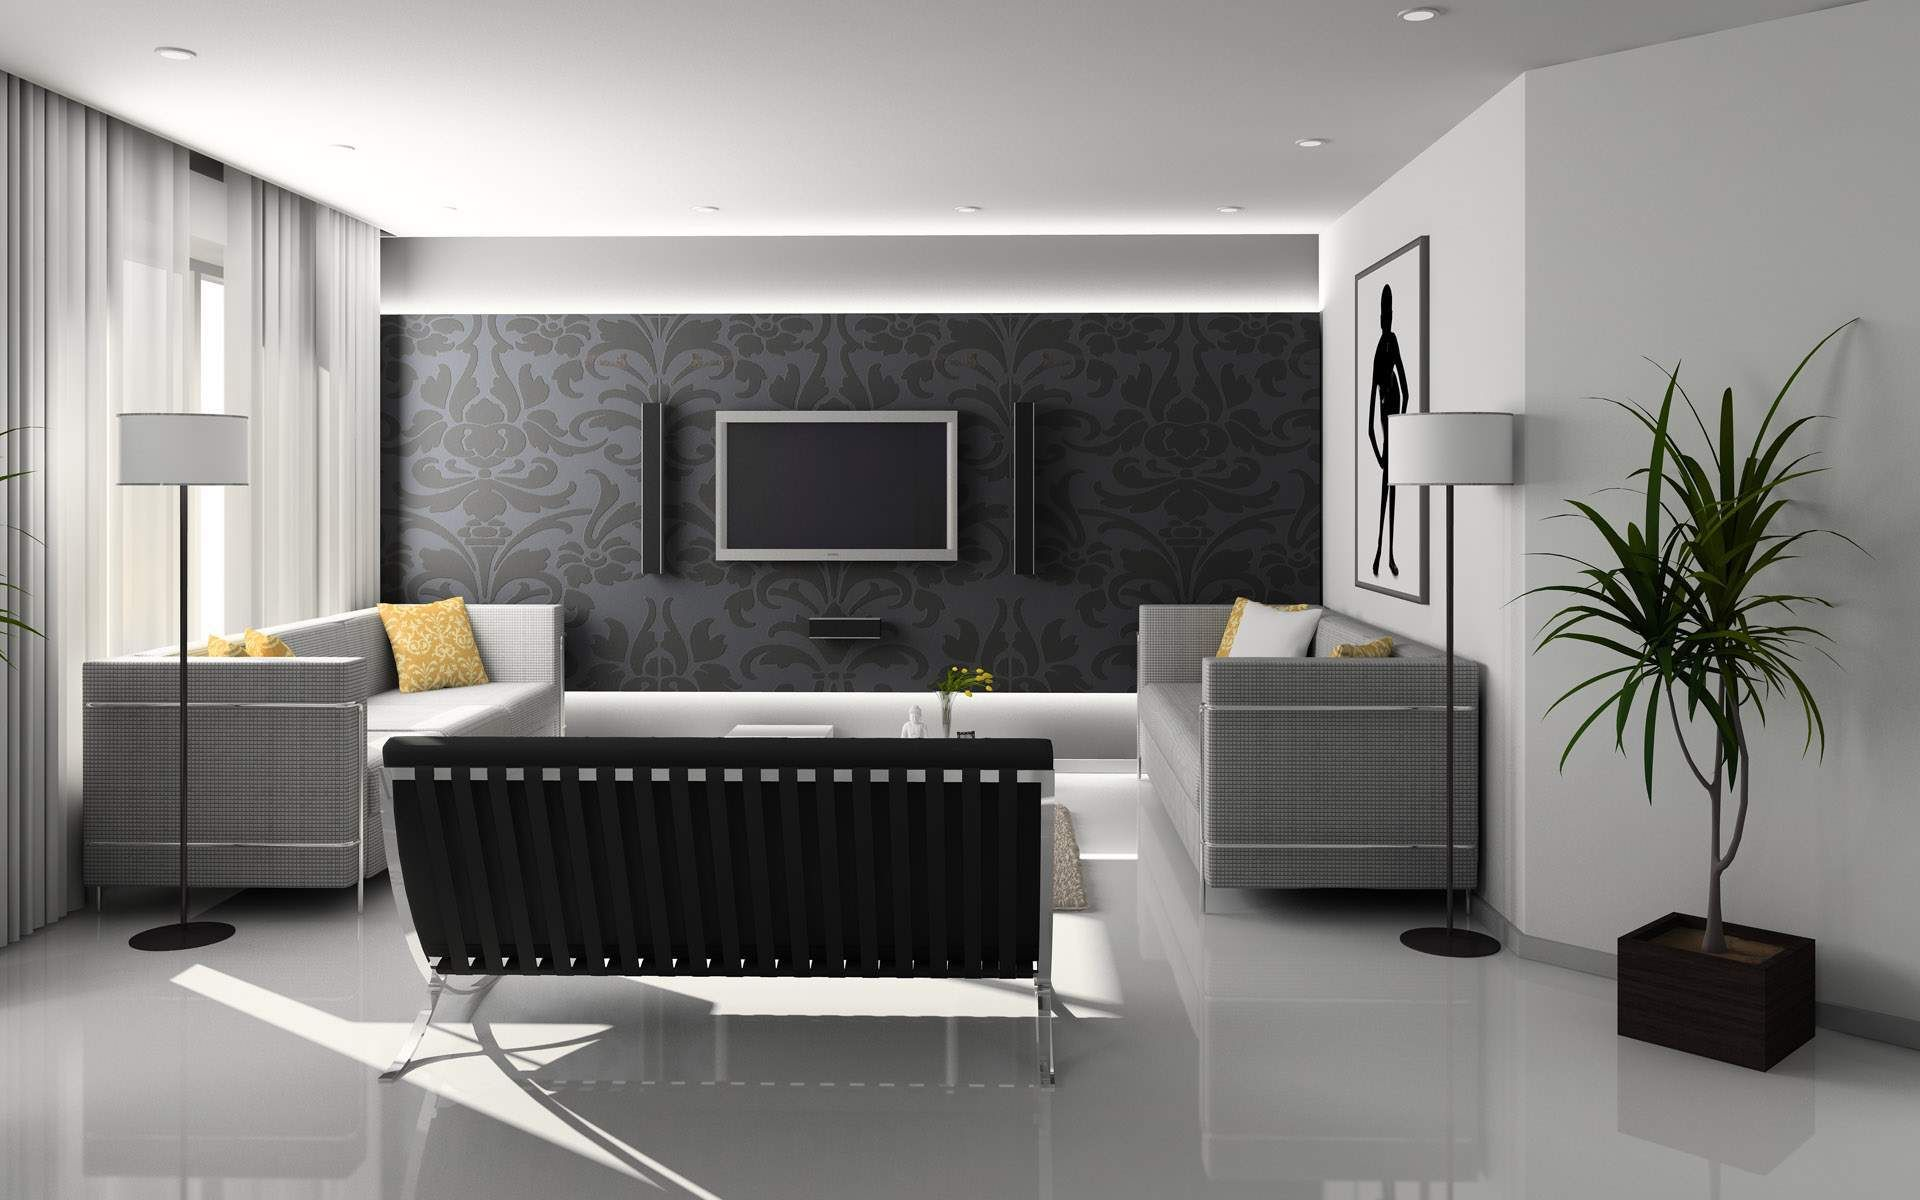 Stylish and Futuristic Living Room Design Concept | Tuxedos, Room ...